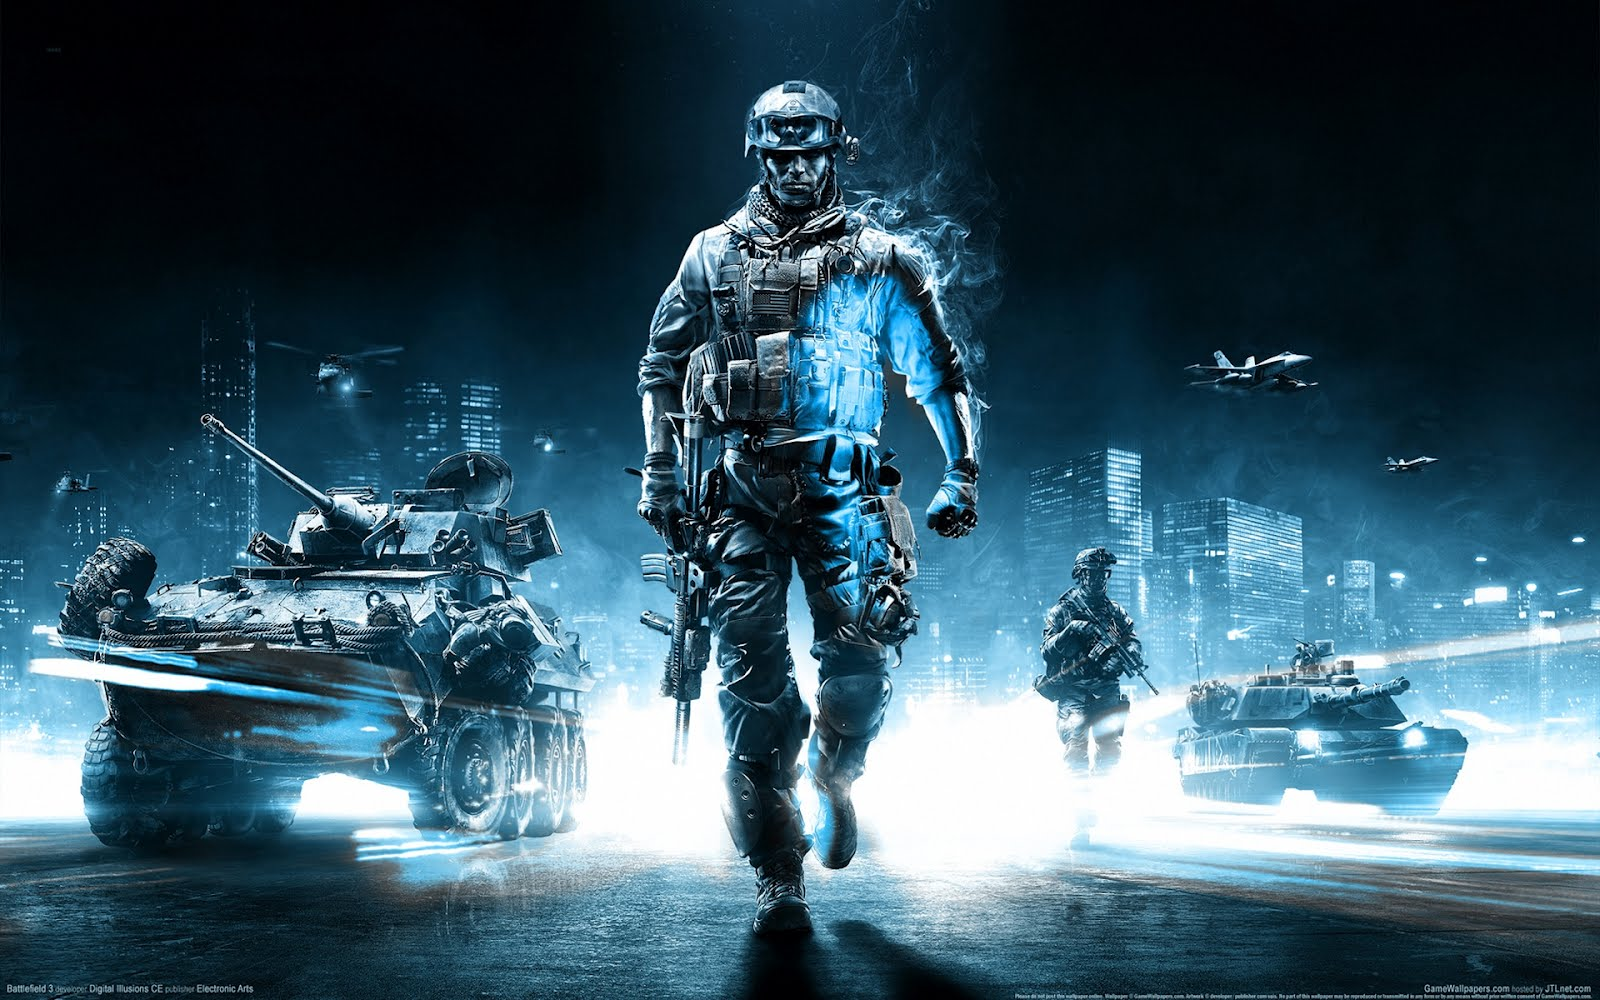 Free games wallpaper wallpaper gallery - Best wallpaper for pc gaming ...